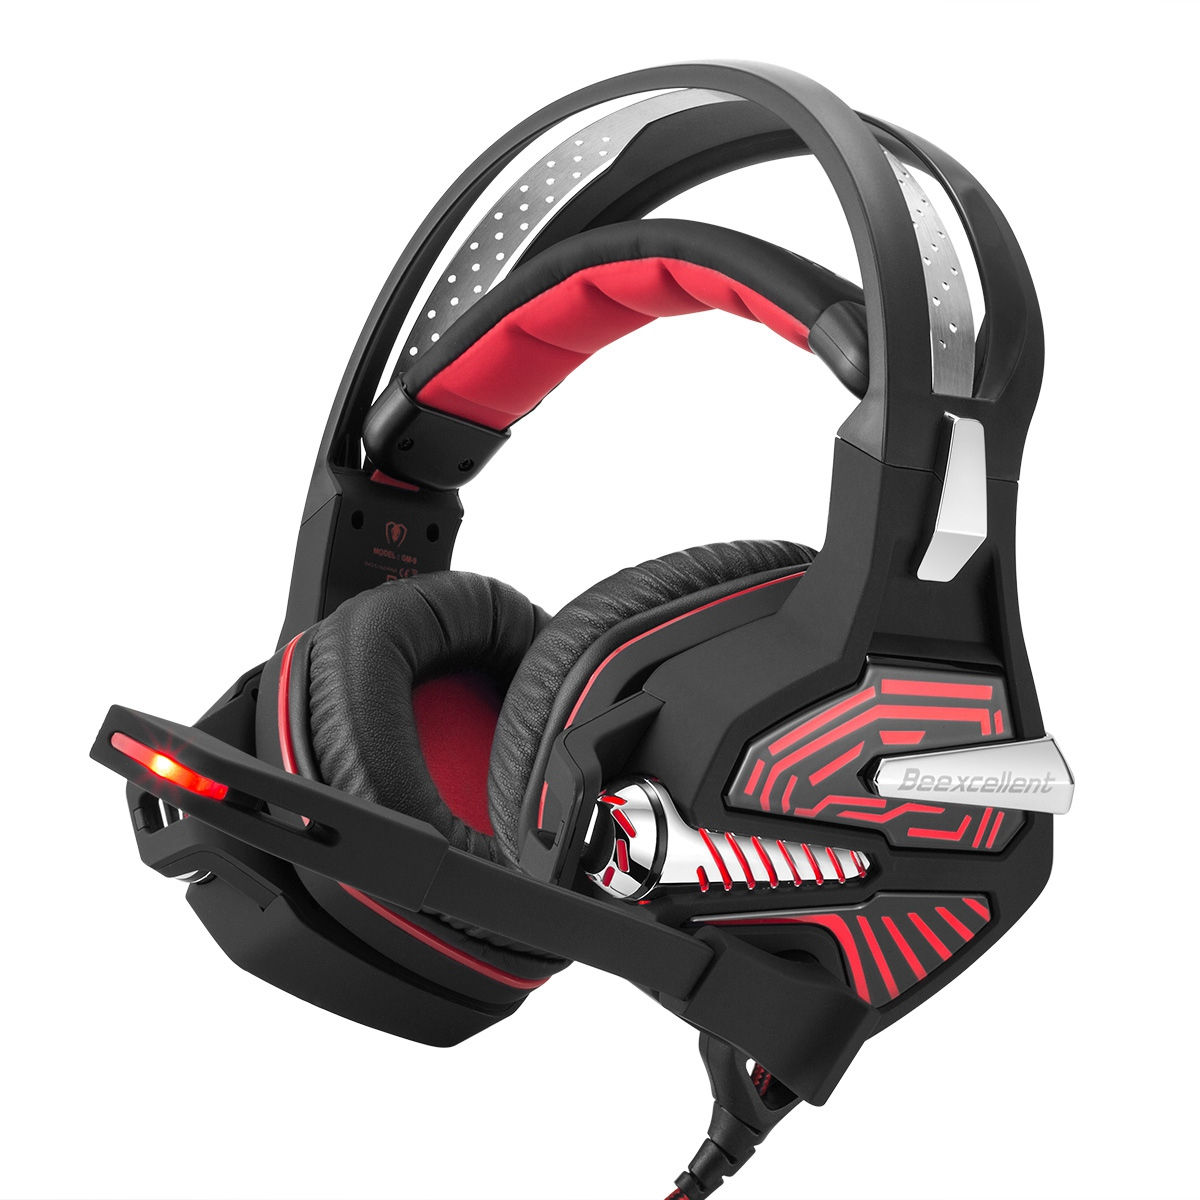 Beexcellent USB Gaming Headset GM-9 7.1 Surround Bass Sound Over-ear Headset with Microphone, LED Lights and Volume Control (R sades a6 usb 7 1 surround sound stereo gaming headset headband over ear headphone with mic volume control led light for pc gamer